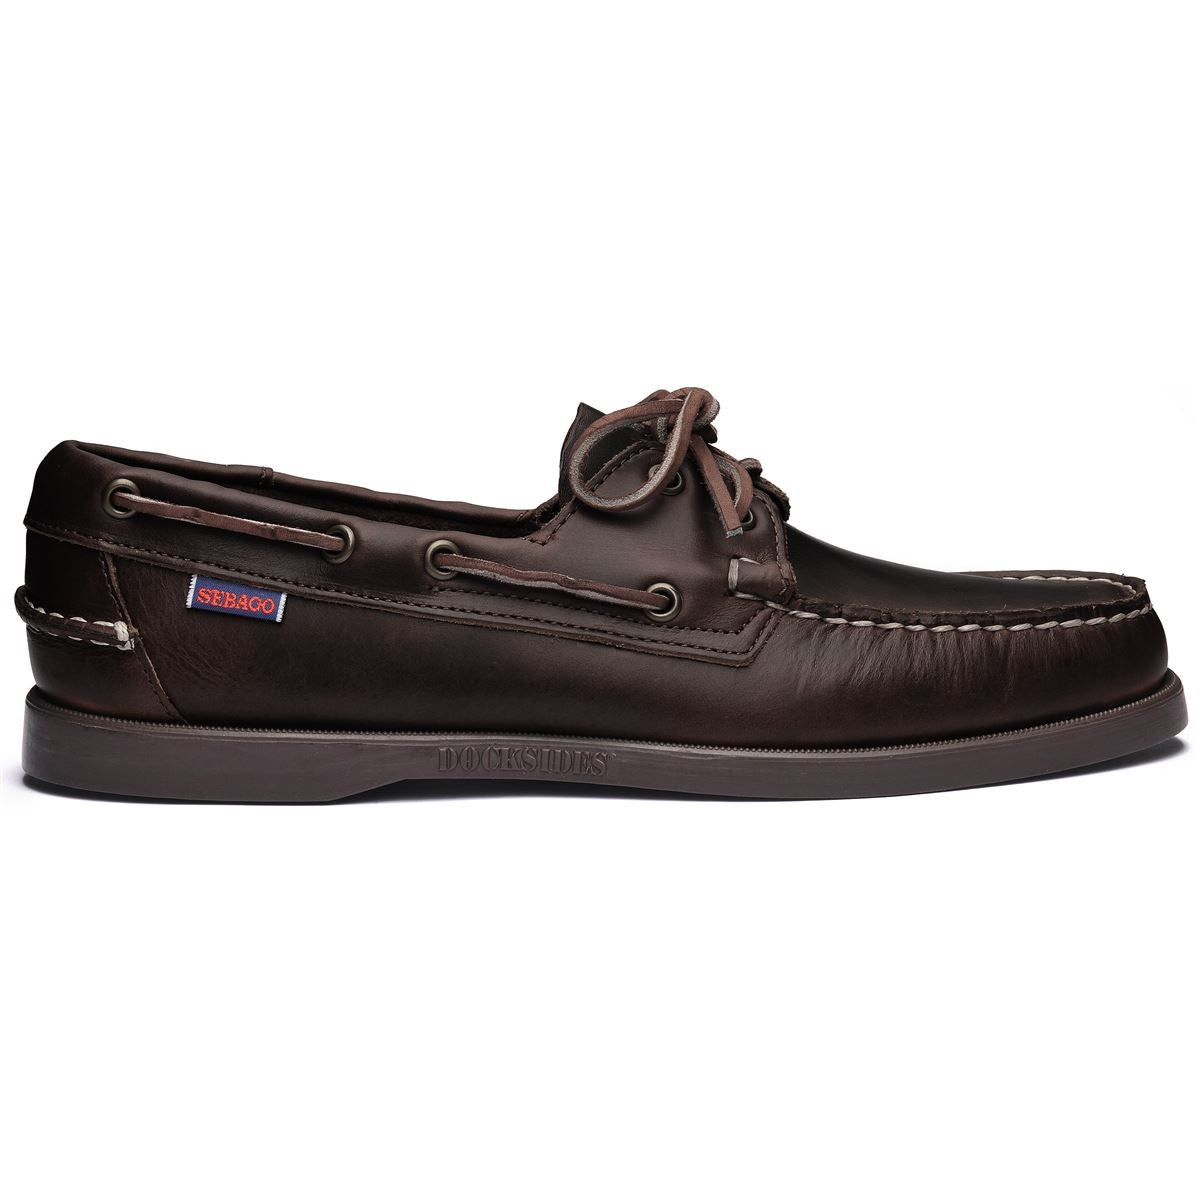 Image of Docksides total dark brown waxed calf by Sebago